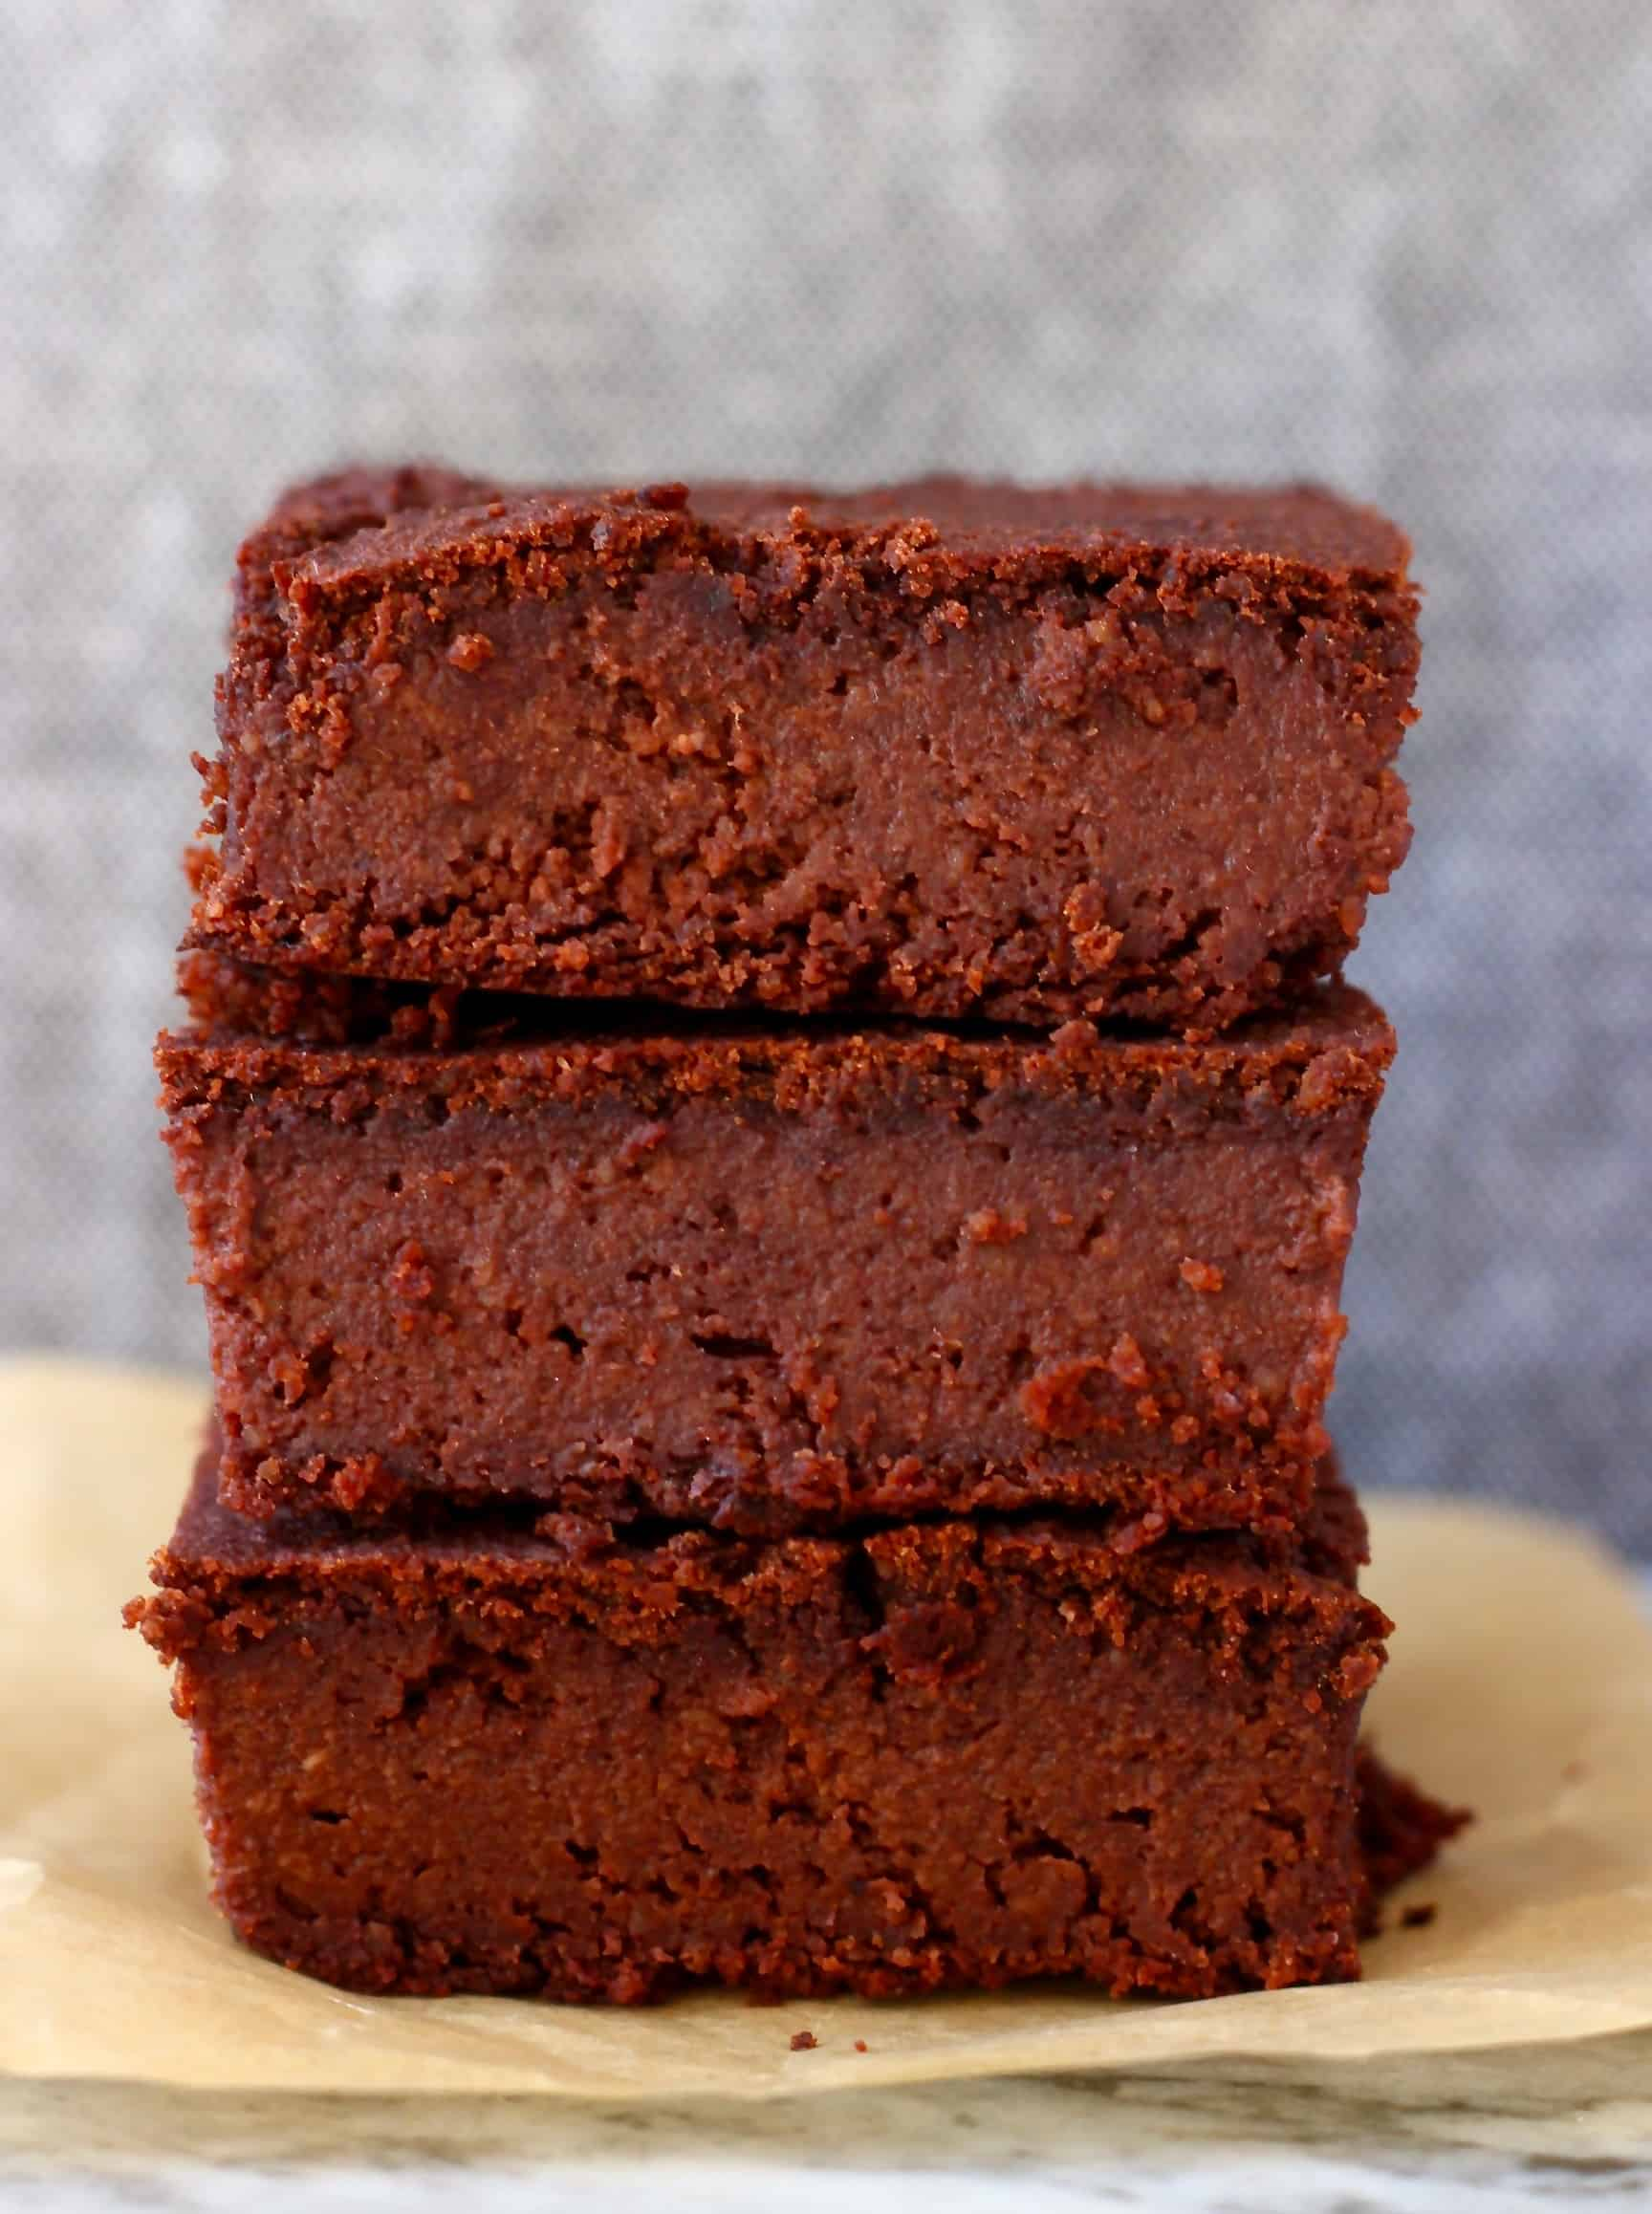 Three black bean brownies stacked on top of each other